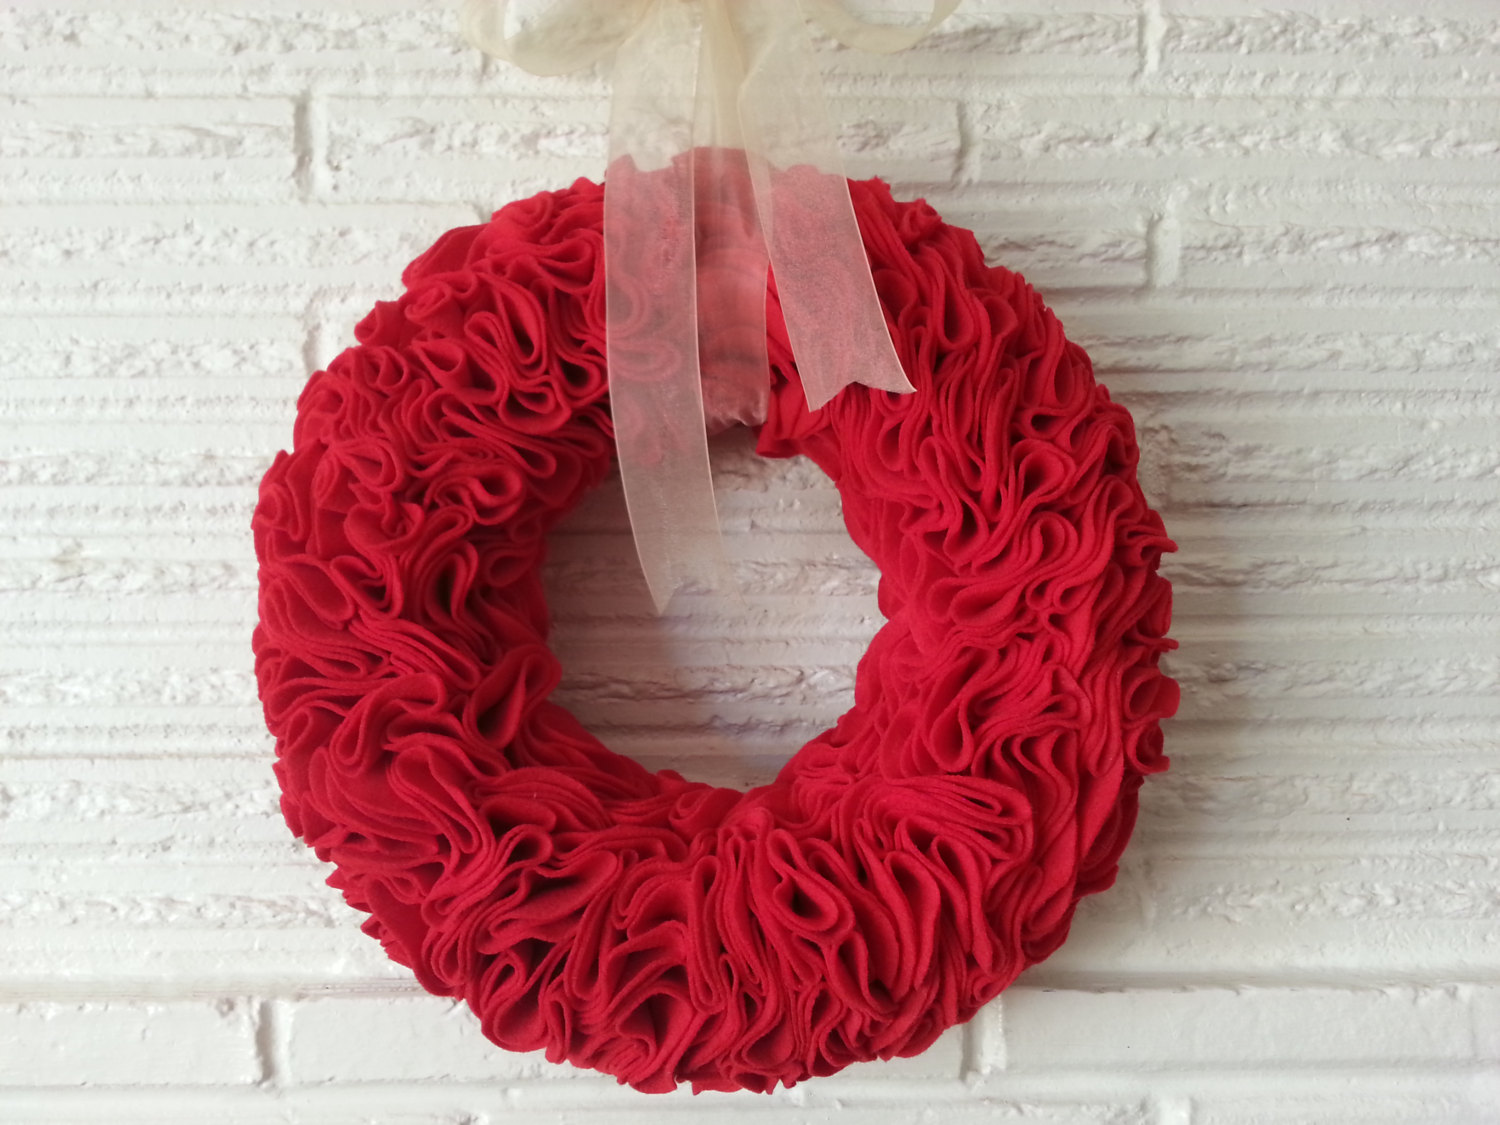 16 Beautiful Handmade Christmas Wreath Designs - Style Motivation